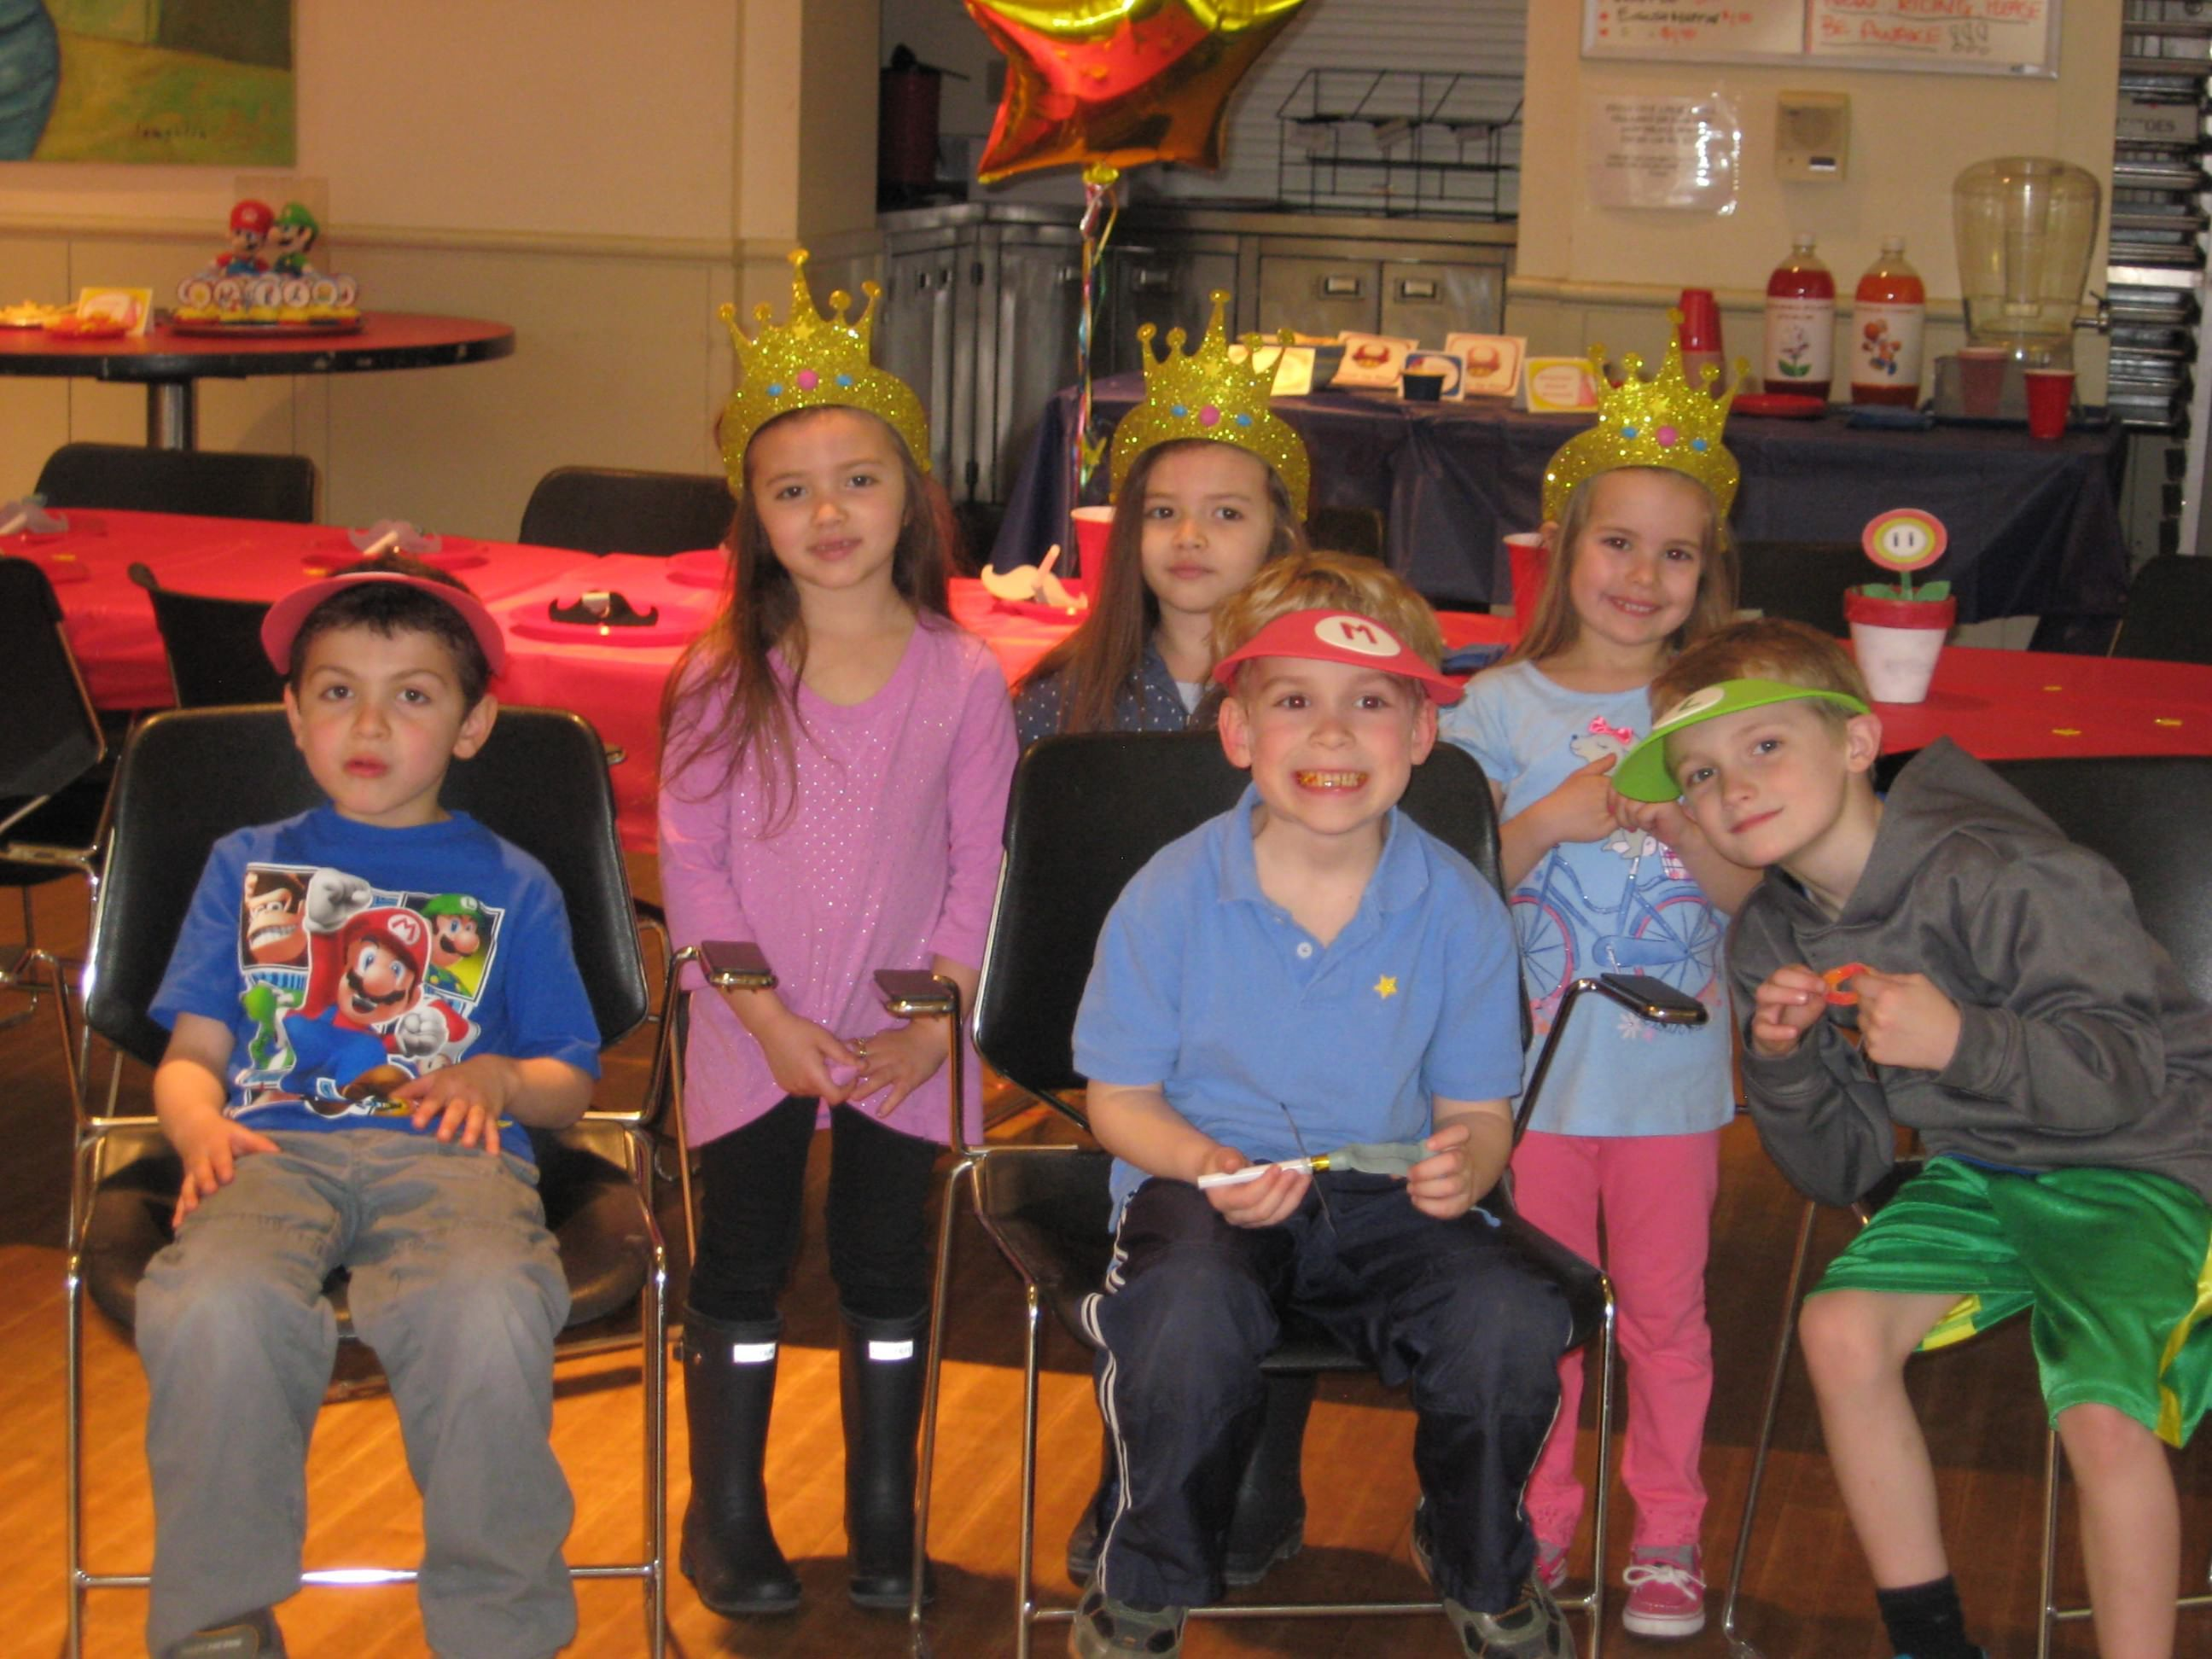 Mario and Luigi hats and Princess Peach crowns - They were a hit! See other 70ce368fe1a3